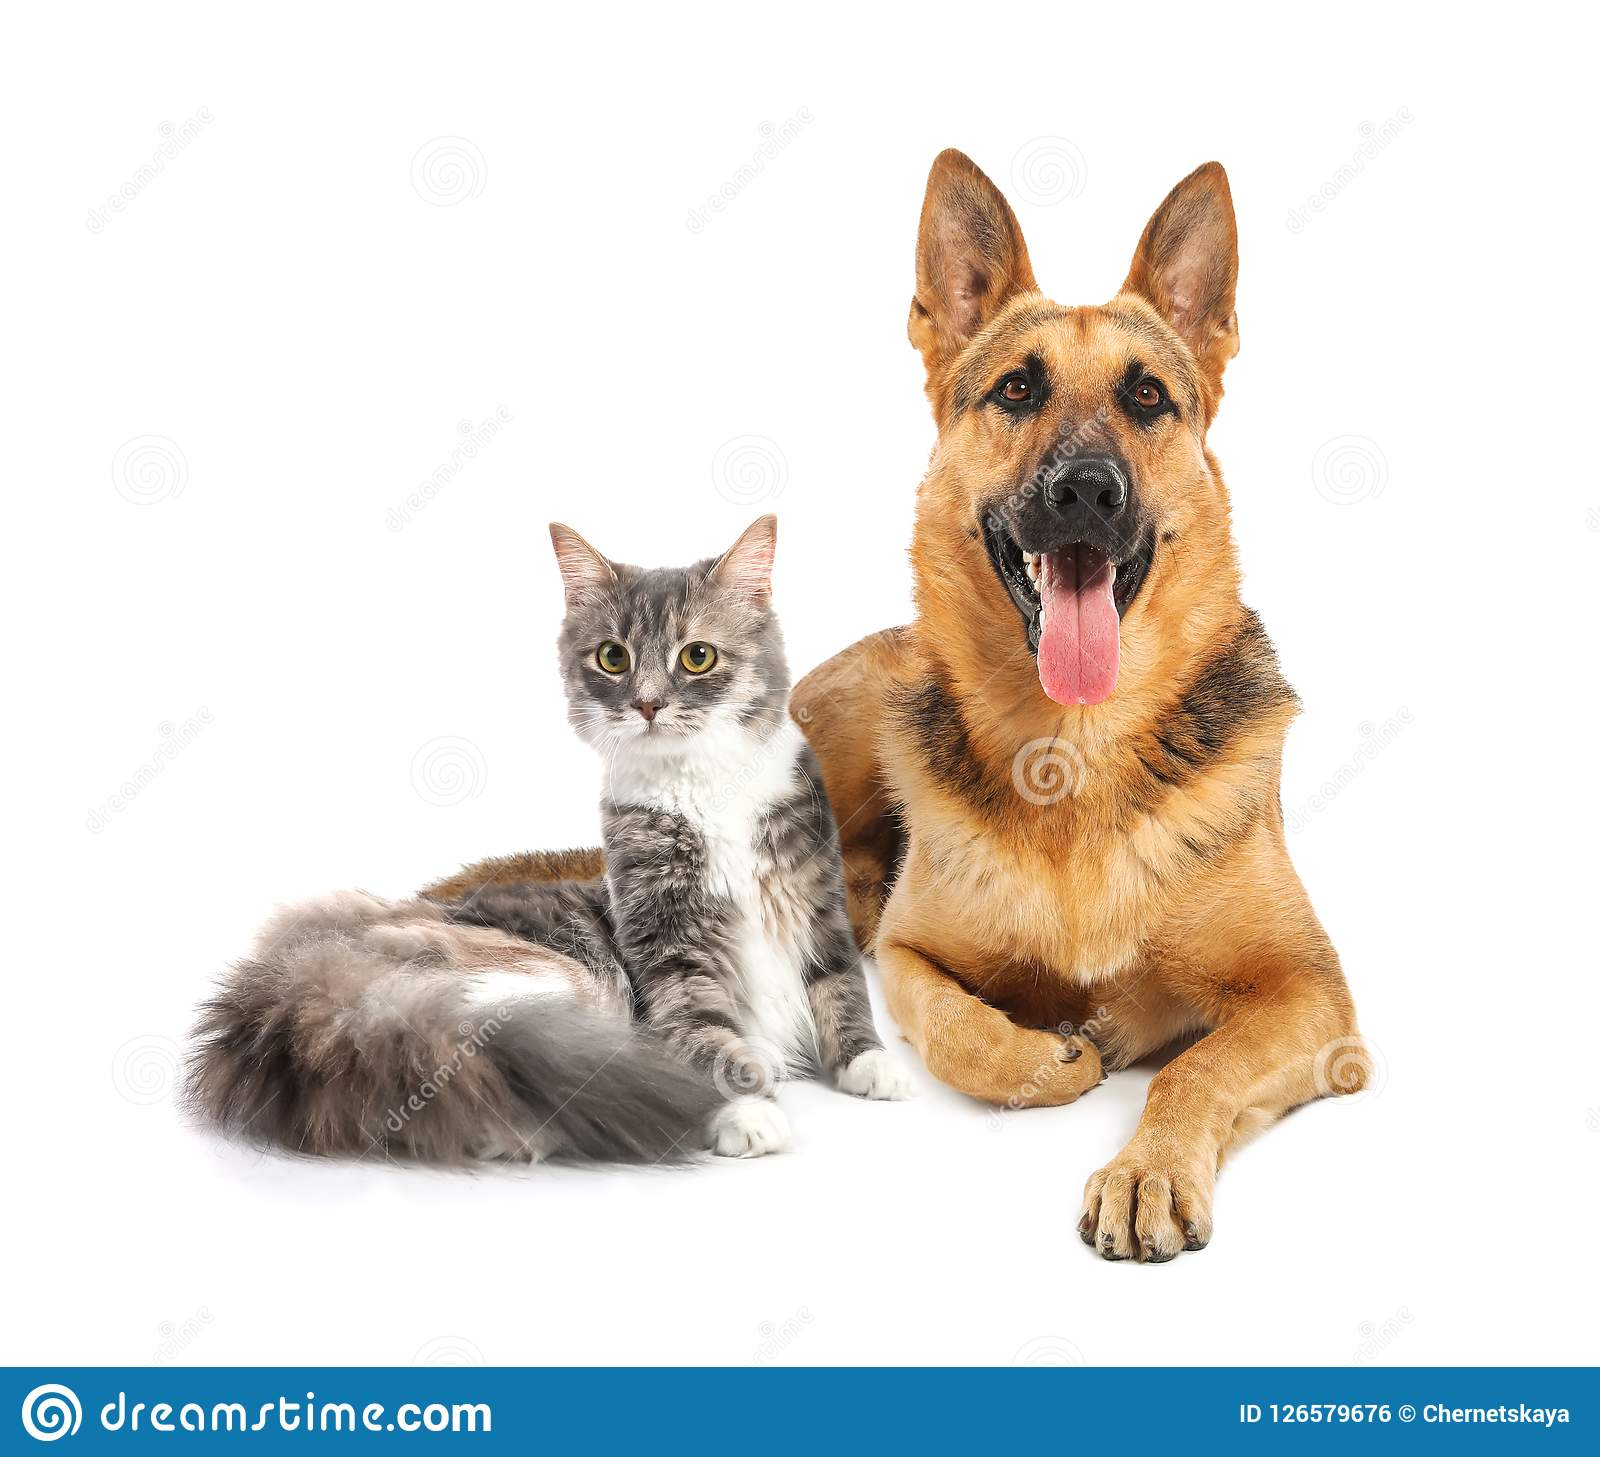 Cute Cat And Dog Together On White Background Stock Photo